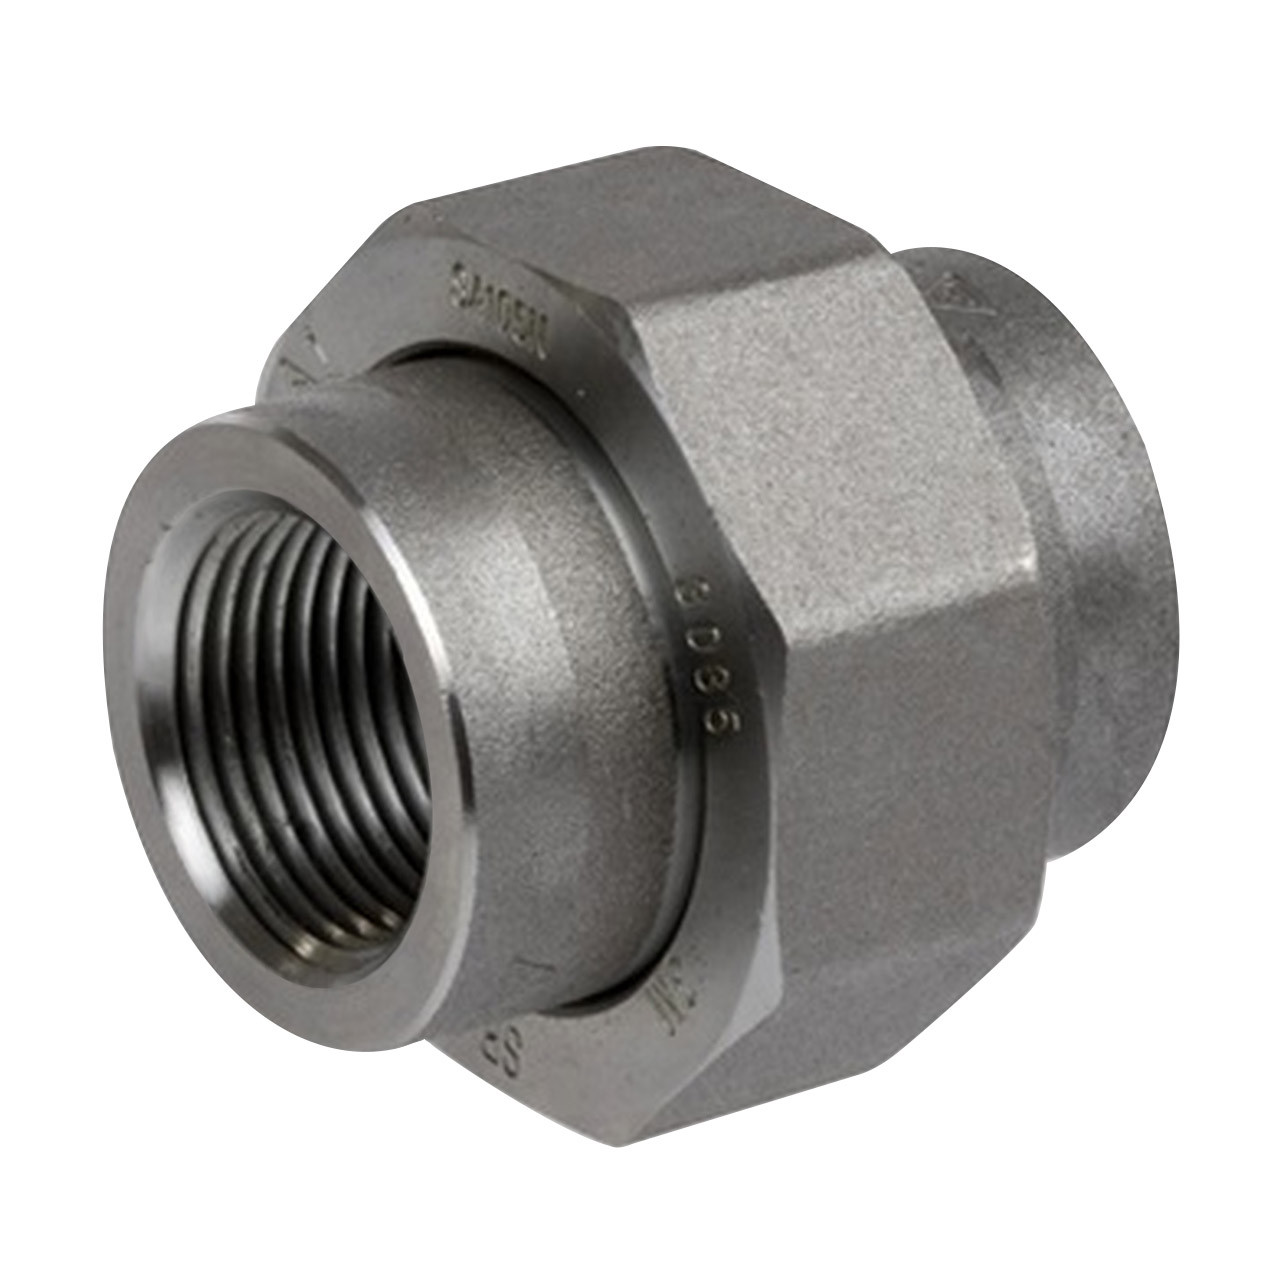 10 mm and 1//4 Parker 68PLPSP-10M-4G-pk5 Composite Push-To-Connect Fitting Push-To-Connect and BSPP Standpipe Tube to Pipe Glass Reinforced 6.6 10 mm and 1//4 Nylon Pack of 5